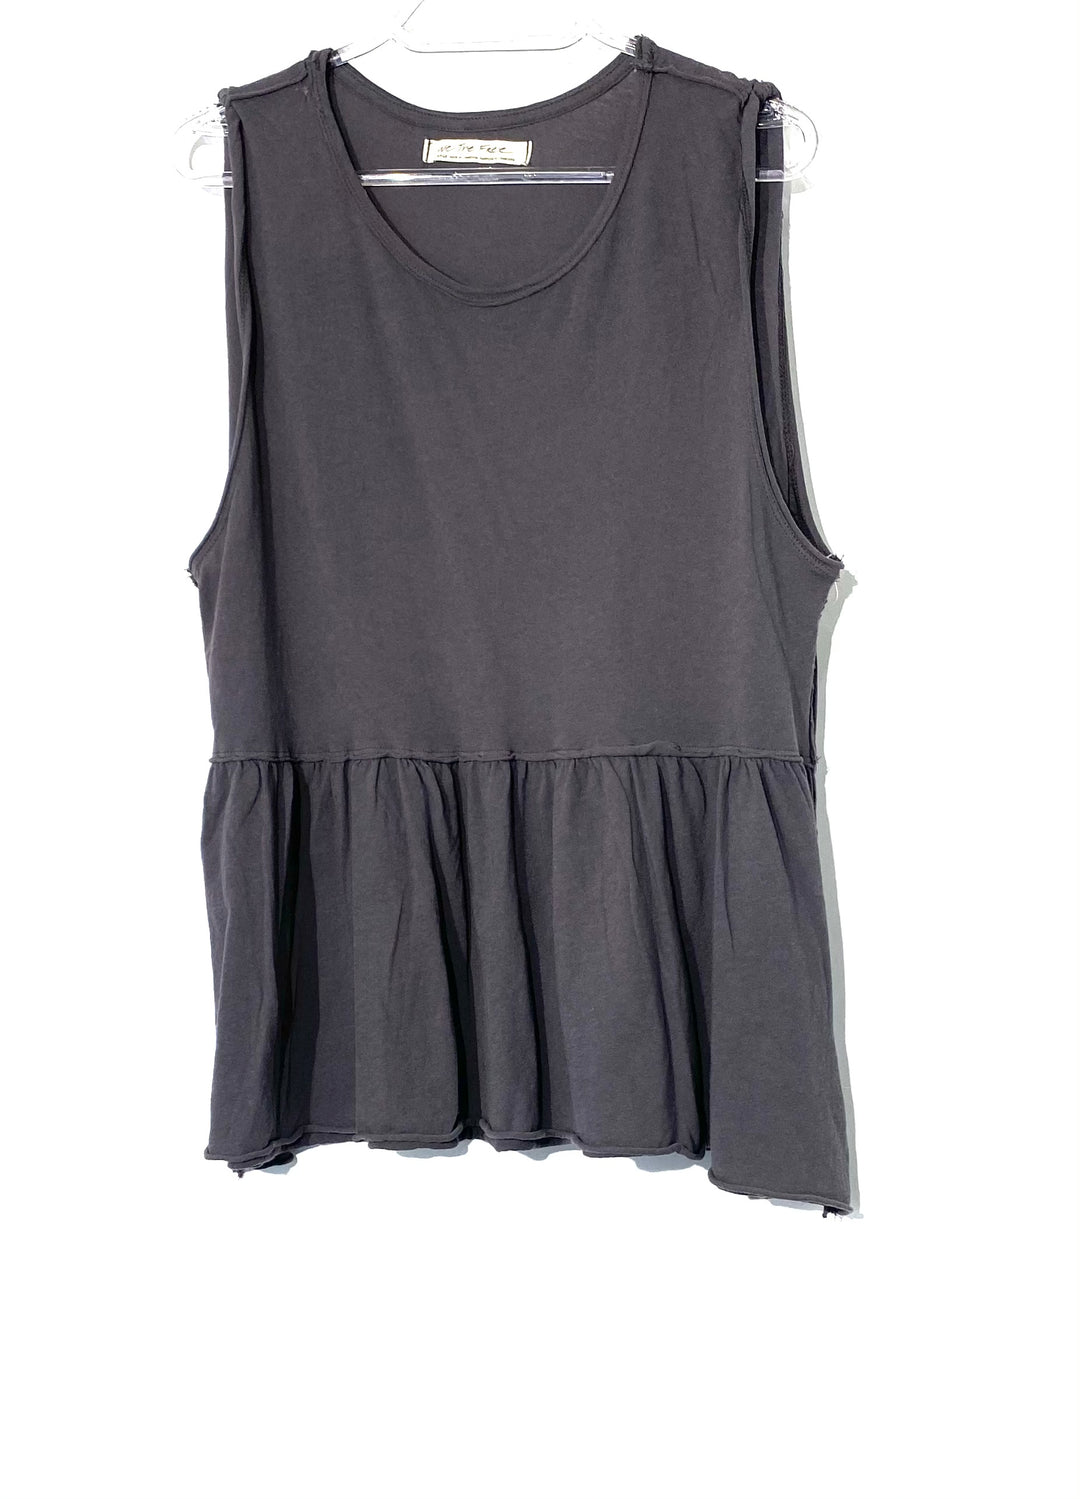 Primary Photo - BRAND: WE THE FREE <BR>STYLE: TOP SLEEVELESS <BR>COLOR: GREY <BR>SIZE: L <BR>SKU: 262-26275-68184